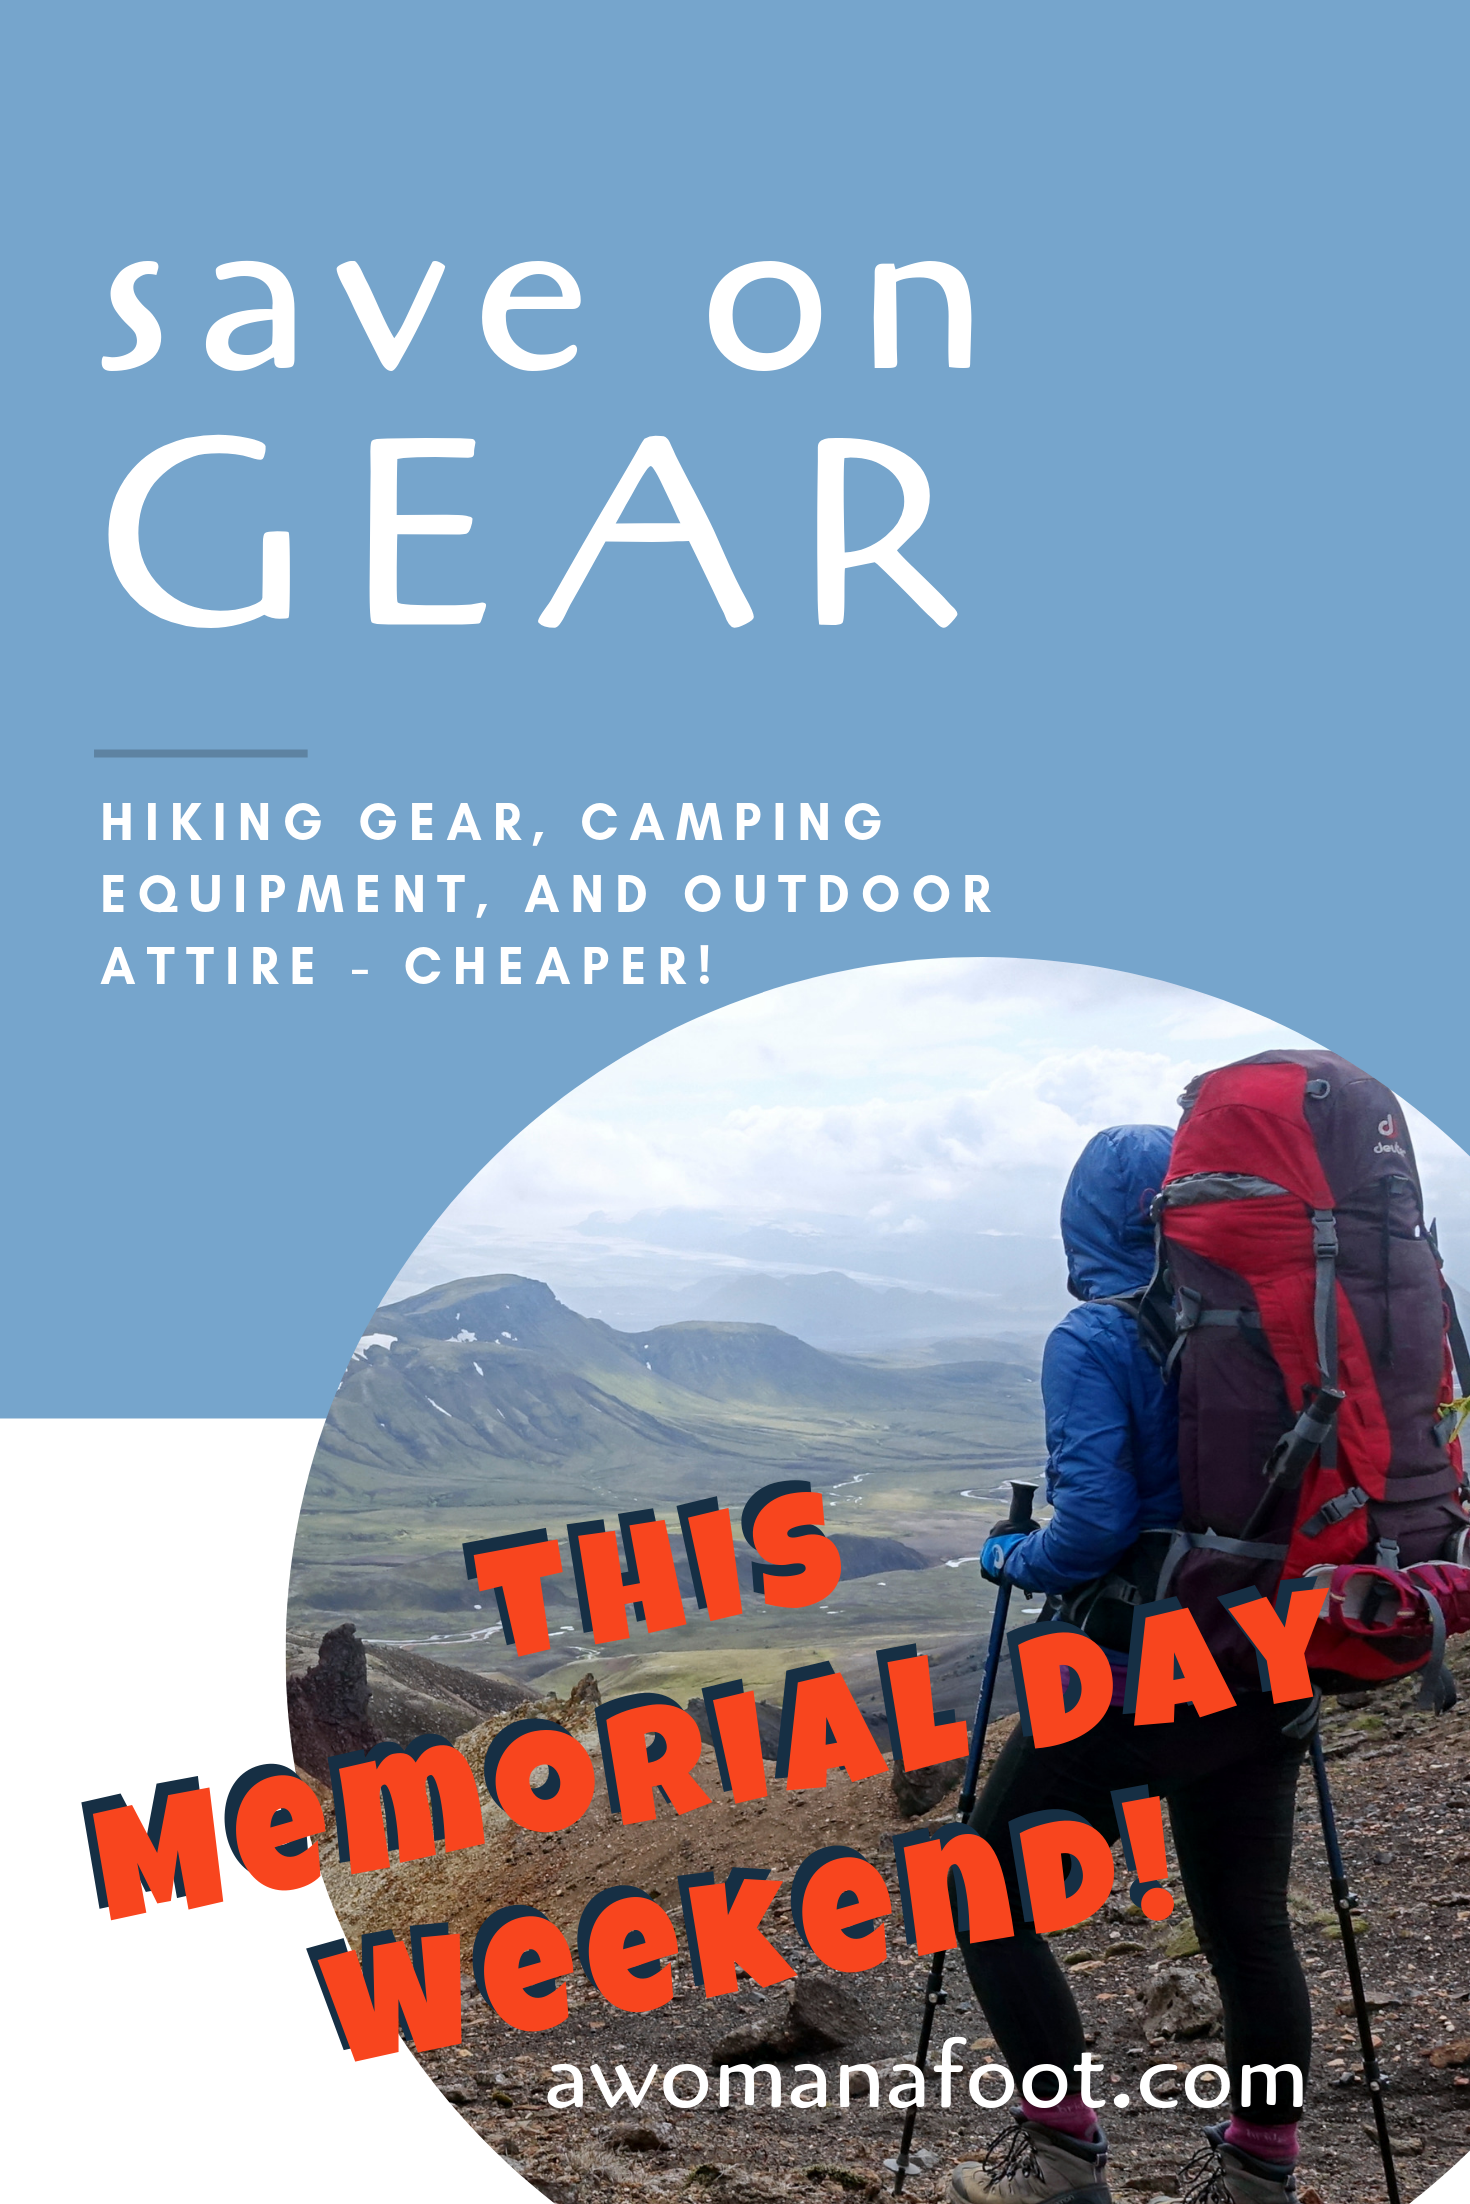 Do you want to save on hiking gear, camping equipment, and Outdoor attire? Click to access seasonal sales, merchant coupons and more @awomanafoot.com! | Hiking & Camping Gear | What to wear hiking | How to save on Outdoor gear | Coupons and sales | Tips on cheaper gear | #hiking #camping #gear #saving #coupons #sales #Outdoor #adventure #Equipment #MemorialDaySales #MemorialDayWeekend